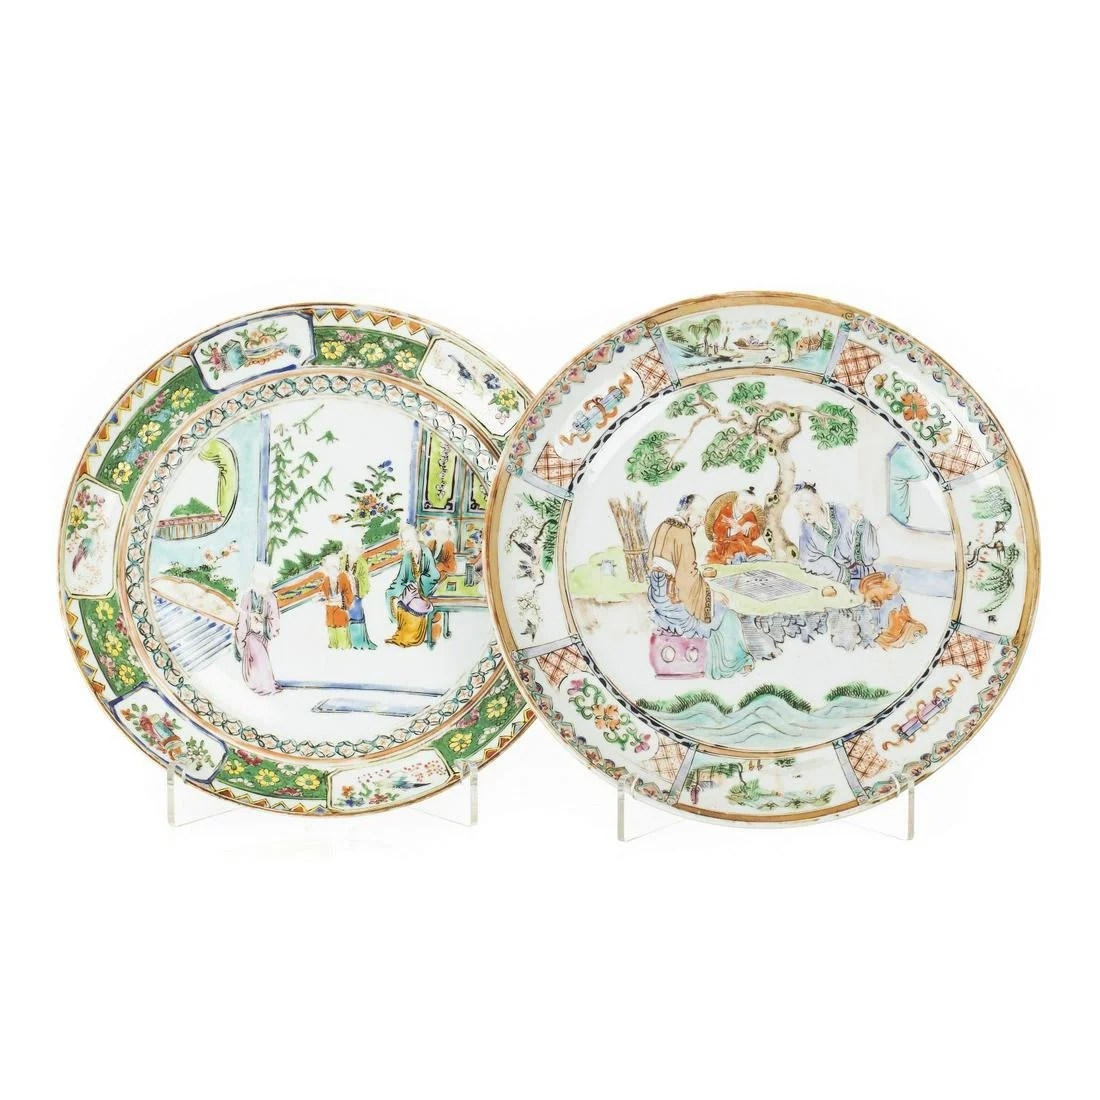 Two figural plates in Chinese porcelain, Minguo